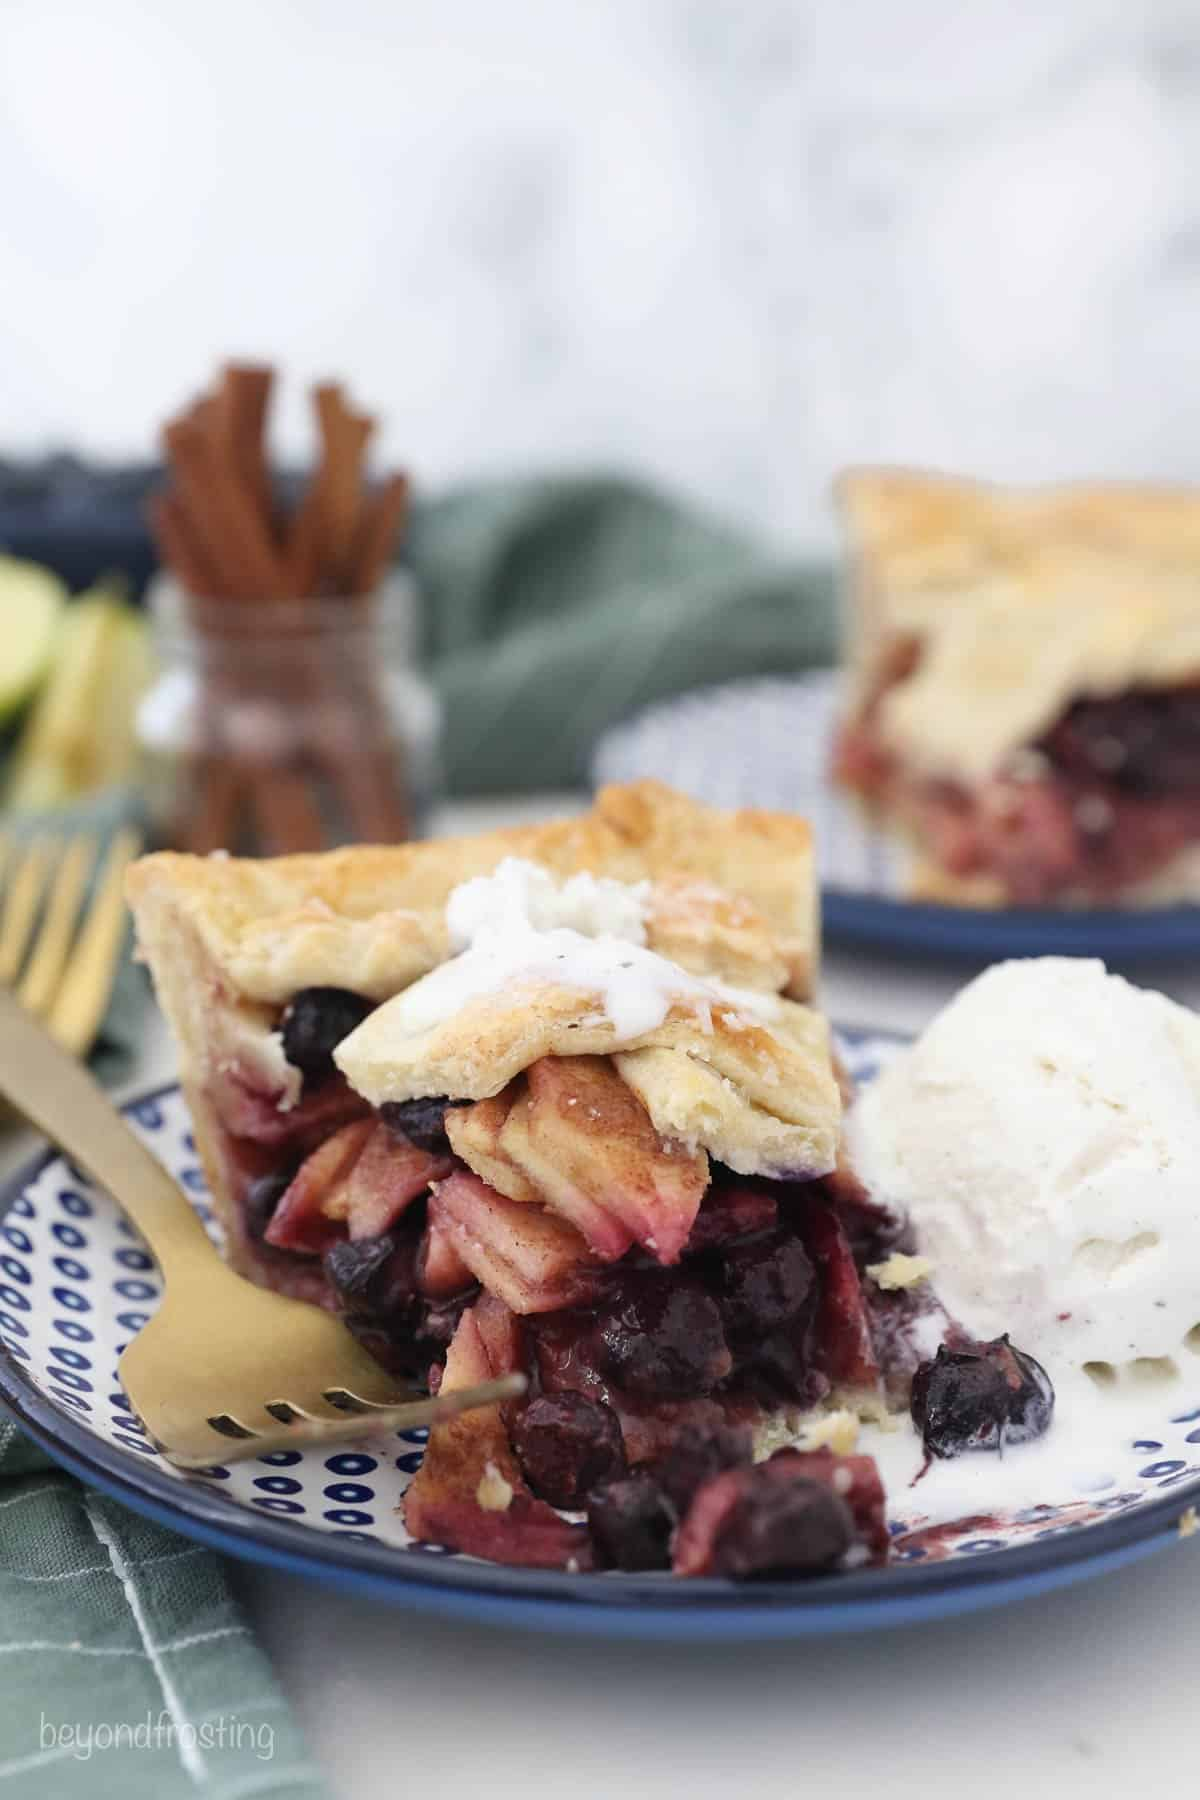 A half eaten slice of apple pie with blueberries and ice cream